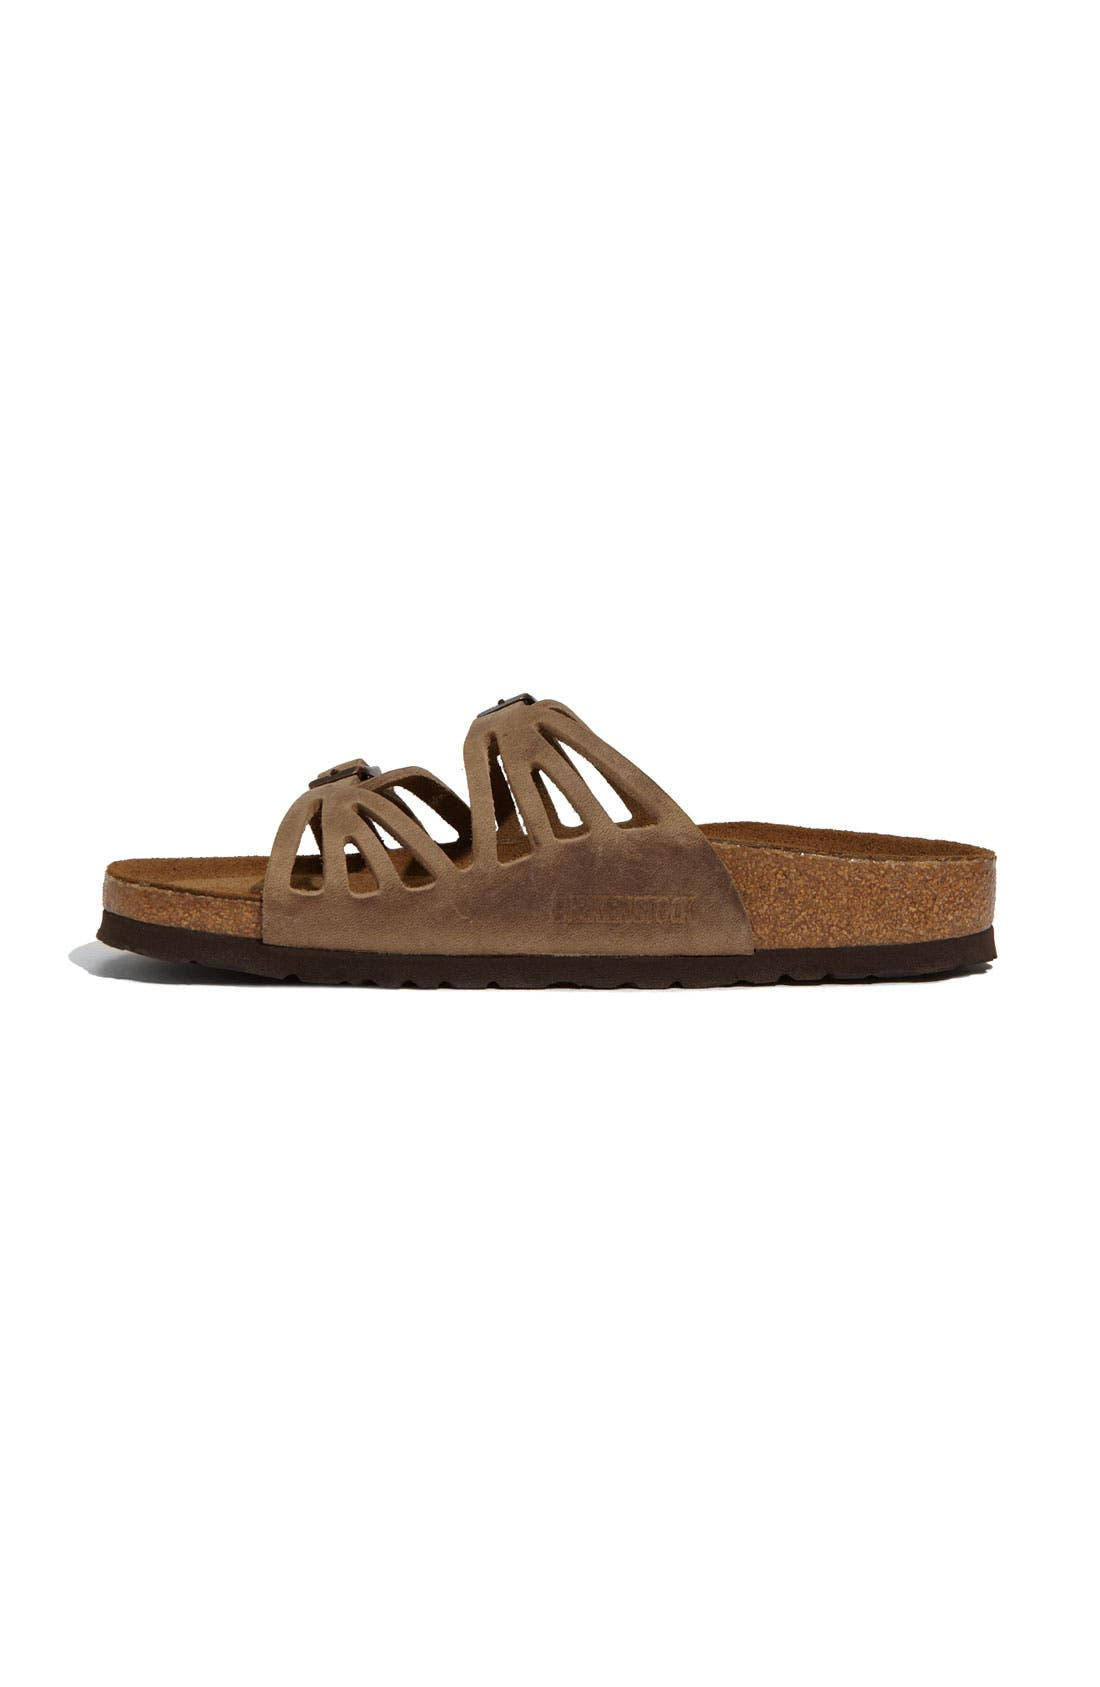 Granada Soft Footbed Oiled Leather Sandal,                             Alternate thumbnail 7, color,                             TOBACCO